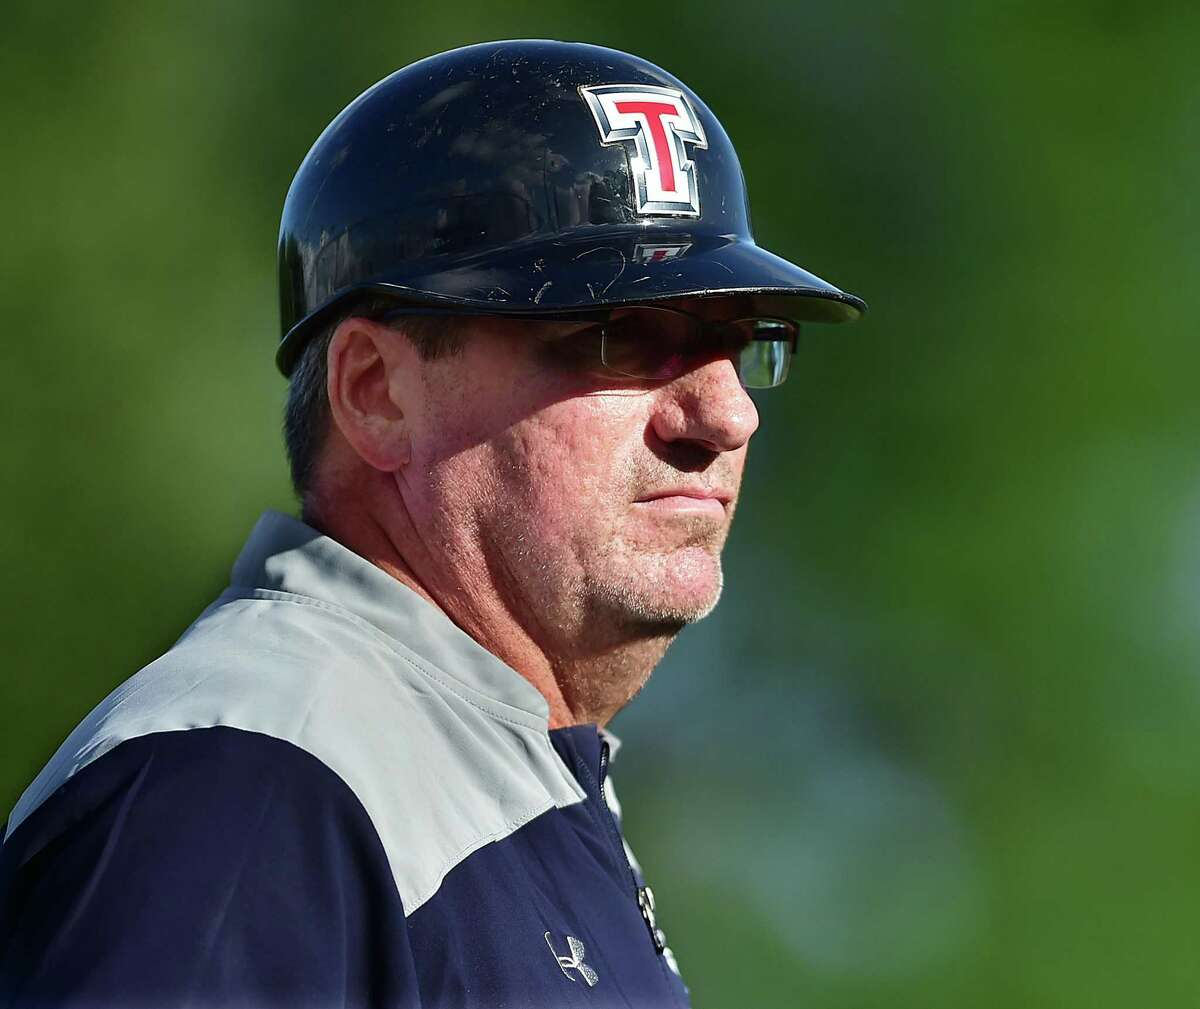 Trumbull head coach Jack McFarland during a game against Hamden on July 24, 2018, in the American Legion senior state tournament at Hamden High School.